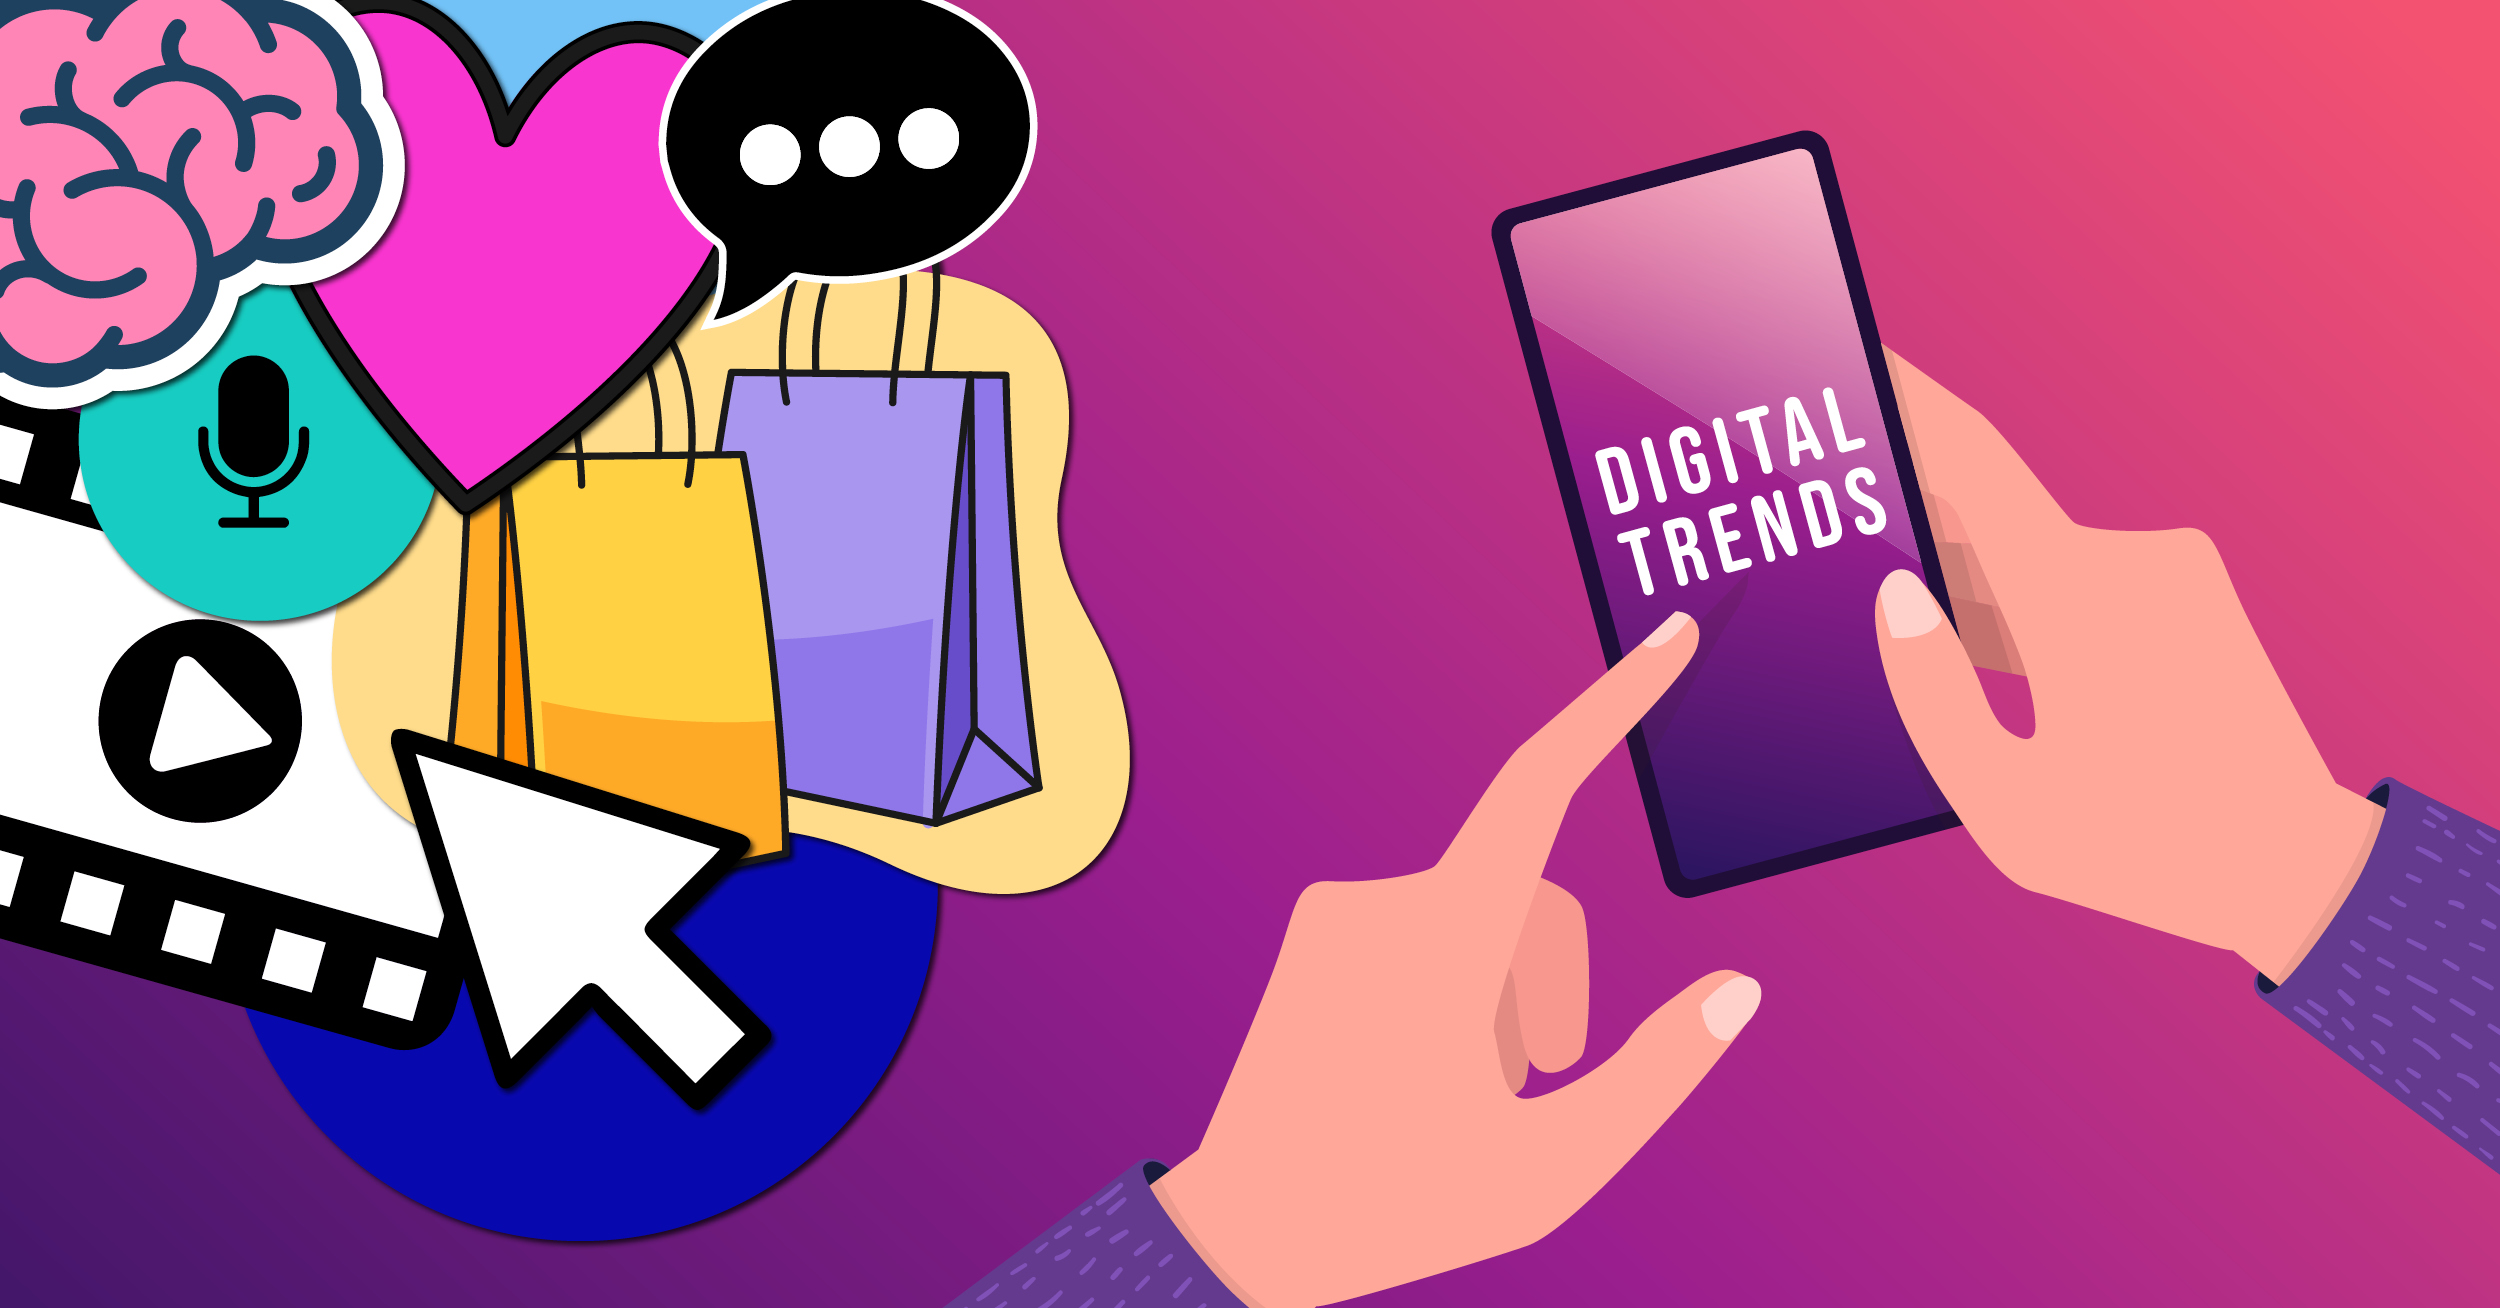 7 Digital Marketing Trends to Consider in Your Next Marketing Budget